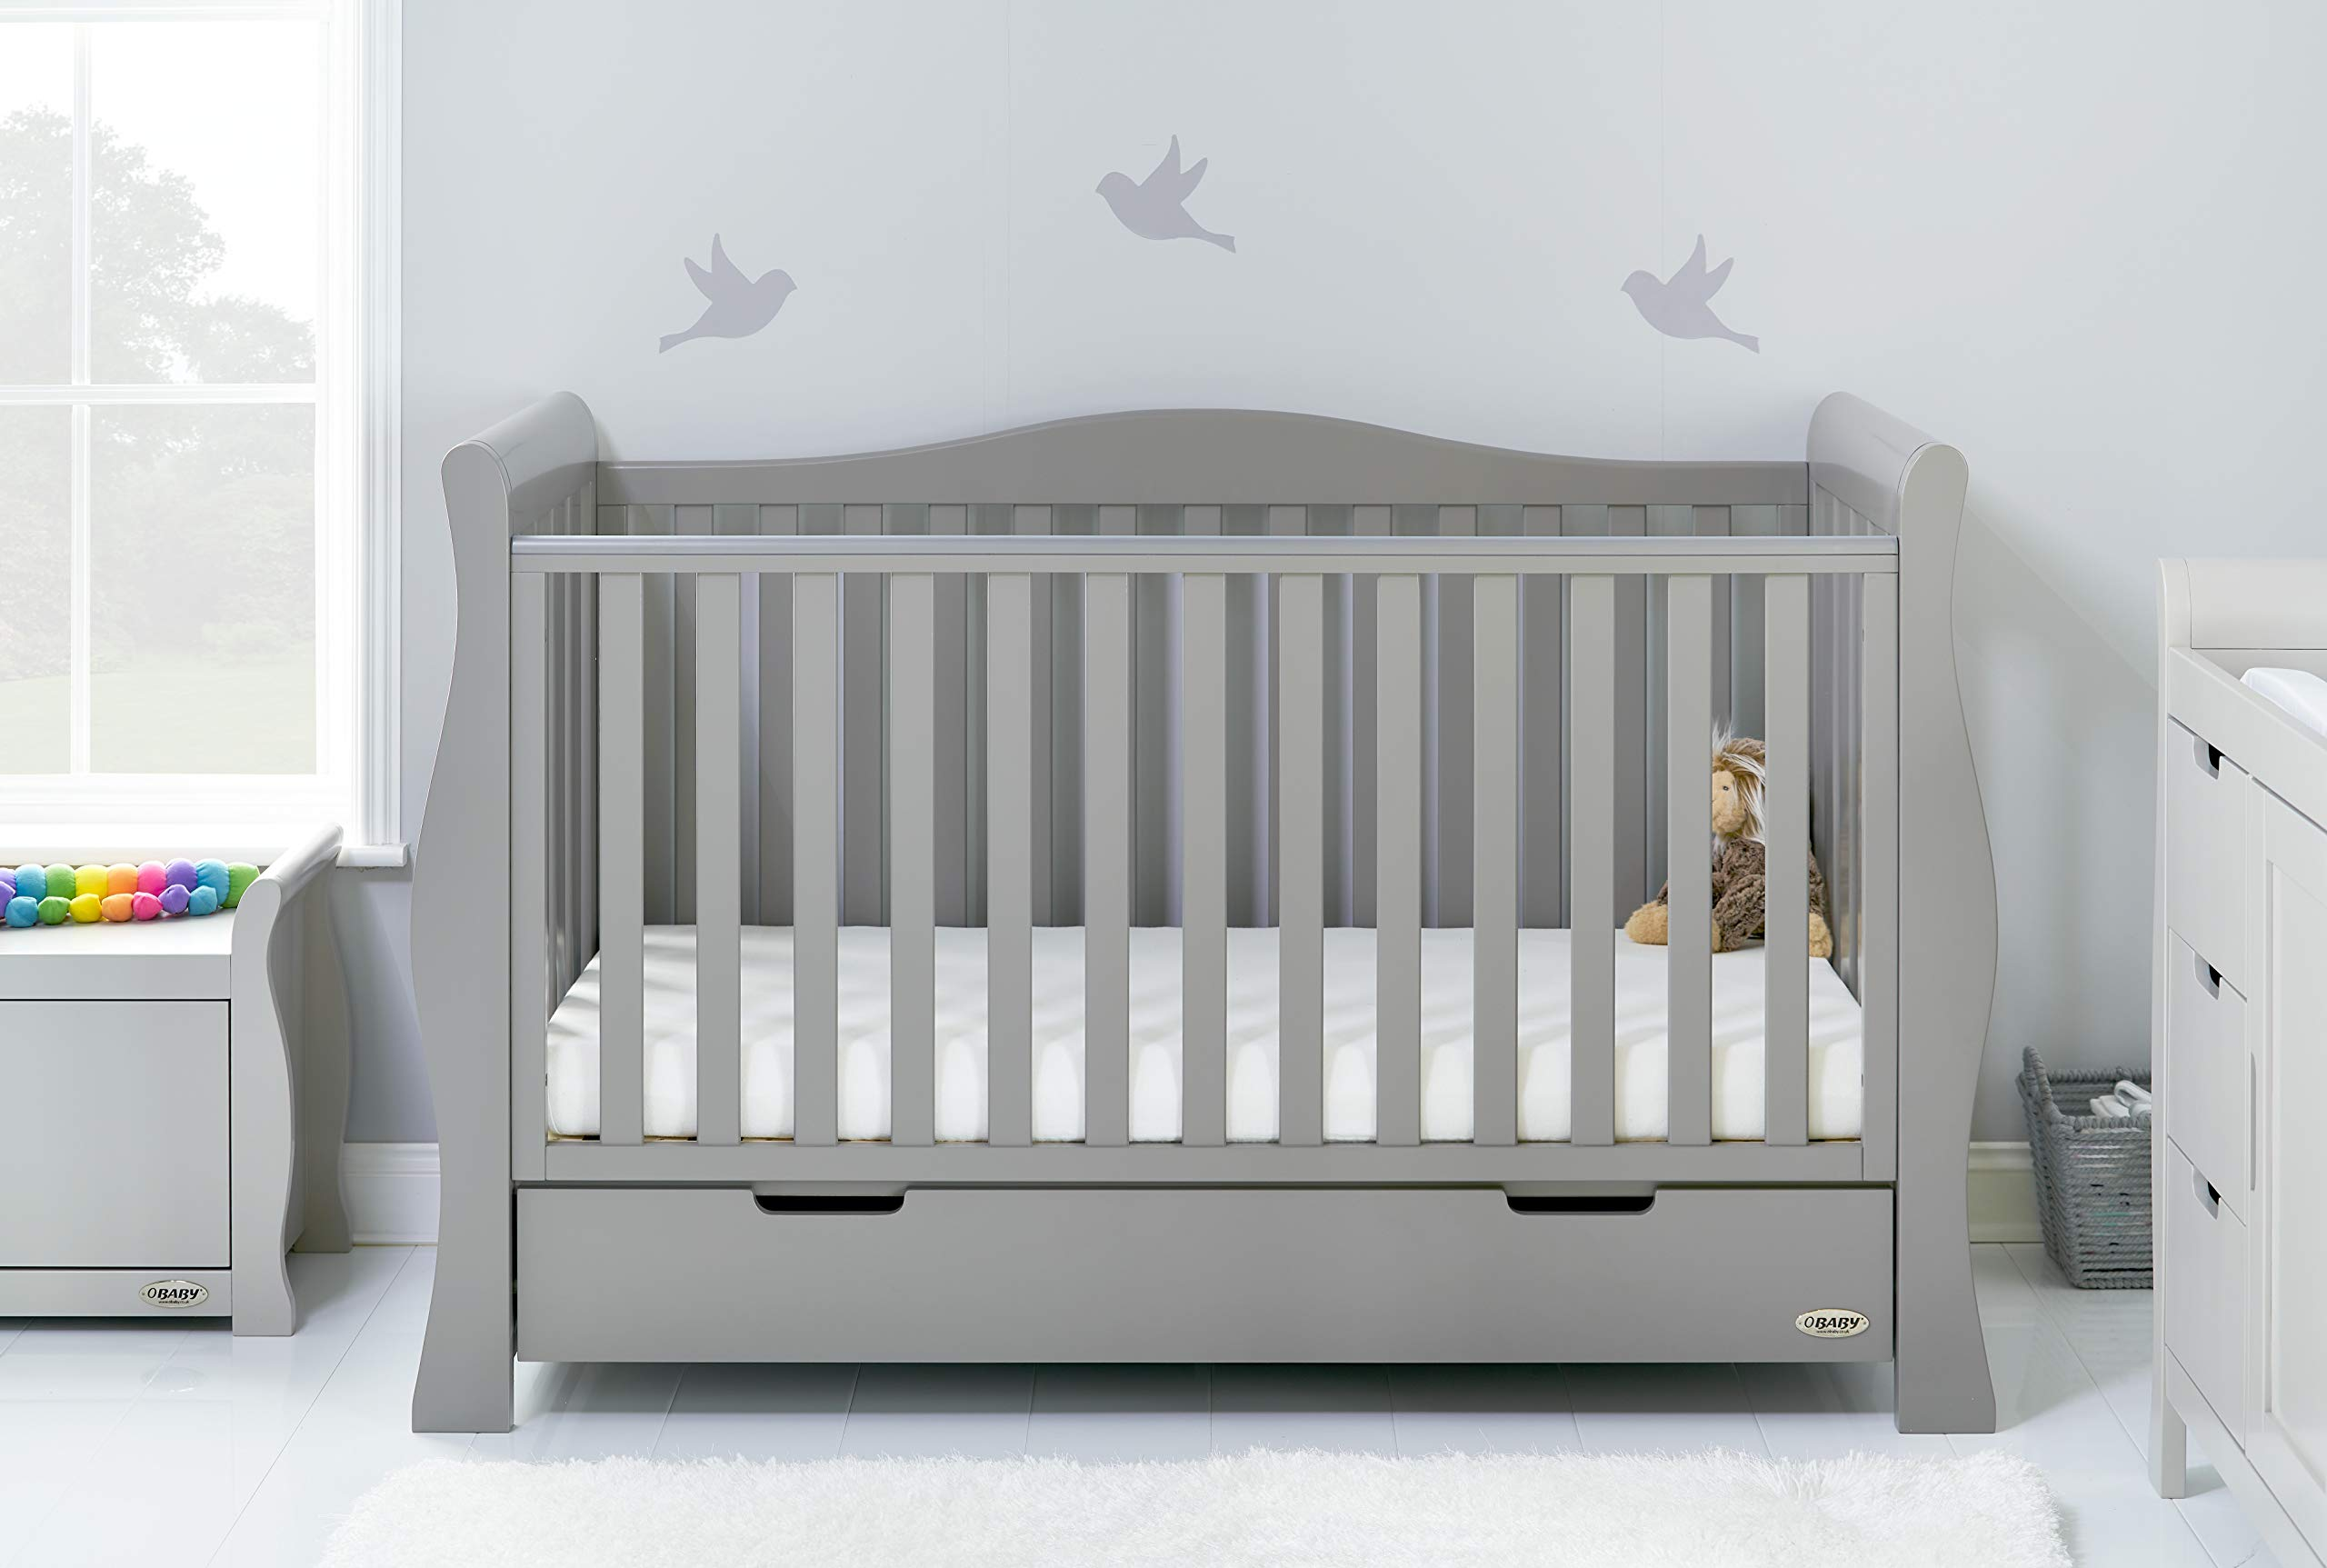 Obaby Stamford Luxe Sleigh Cot Bed, Warm Grey Obaby Adjustable 3 position mattress height Sides remove to transform into toddler bed Includes matching under drawer for storage 1